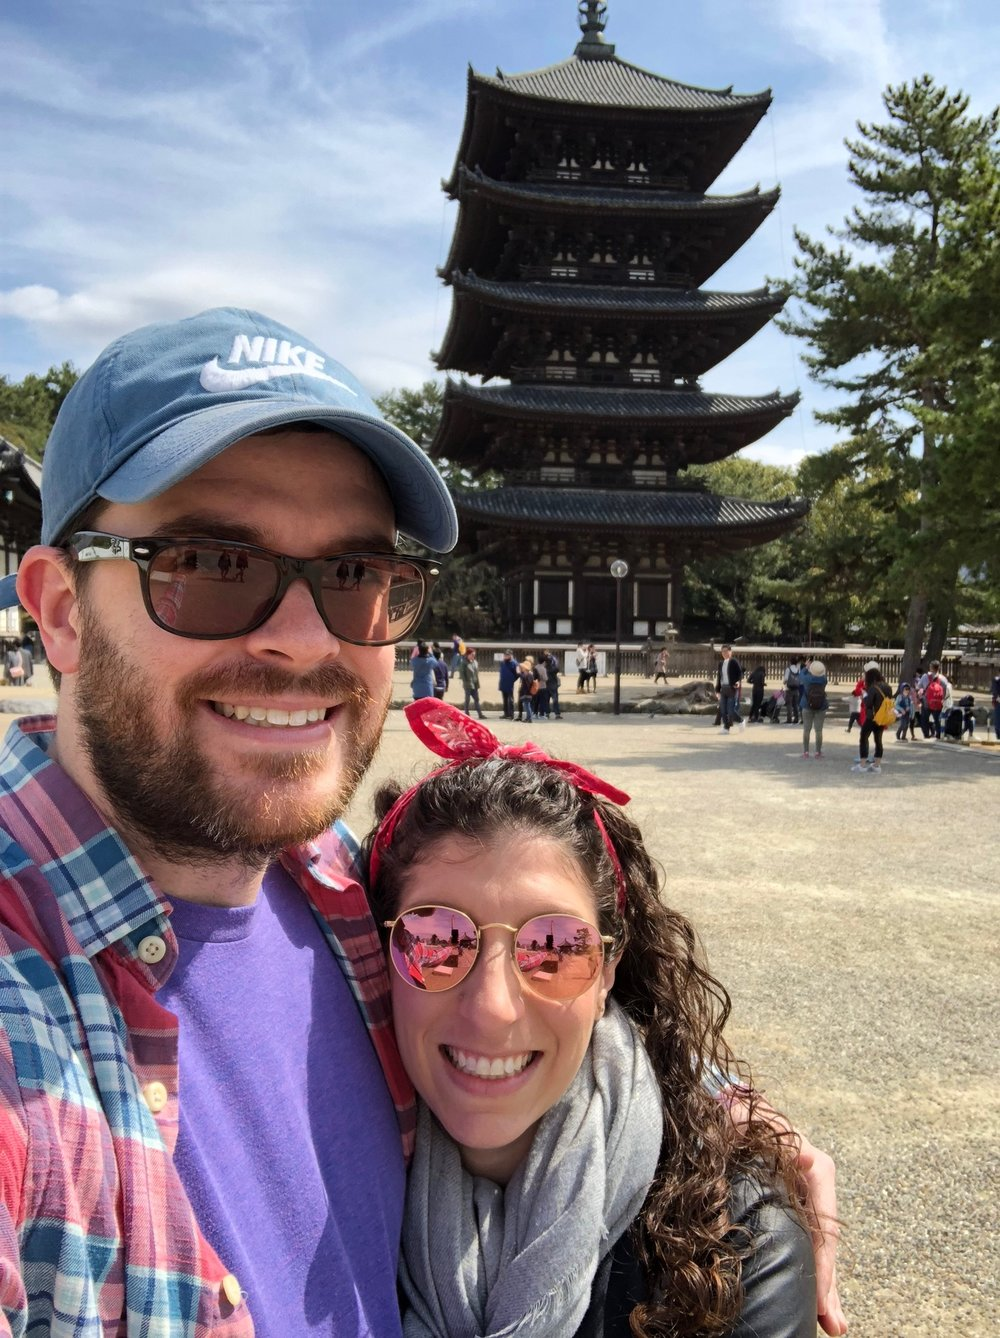 Kofuku-ji was our first stop in Nara. Only a few buildings remain, including this 5-story pagoda (the second tallest in Japan), on grounds that were once home to more than 150 temple buildings.